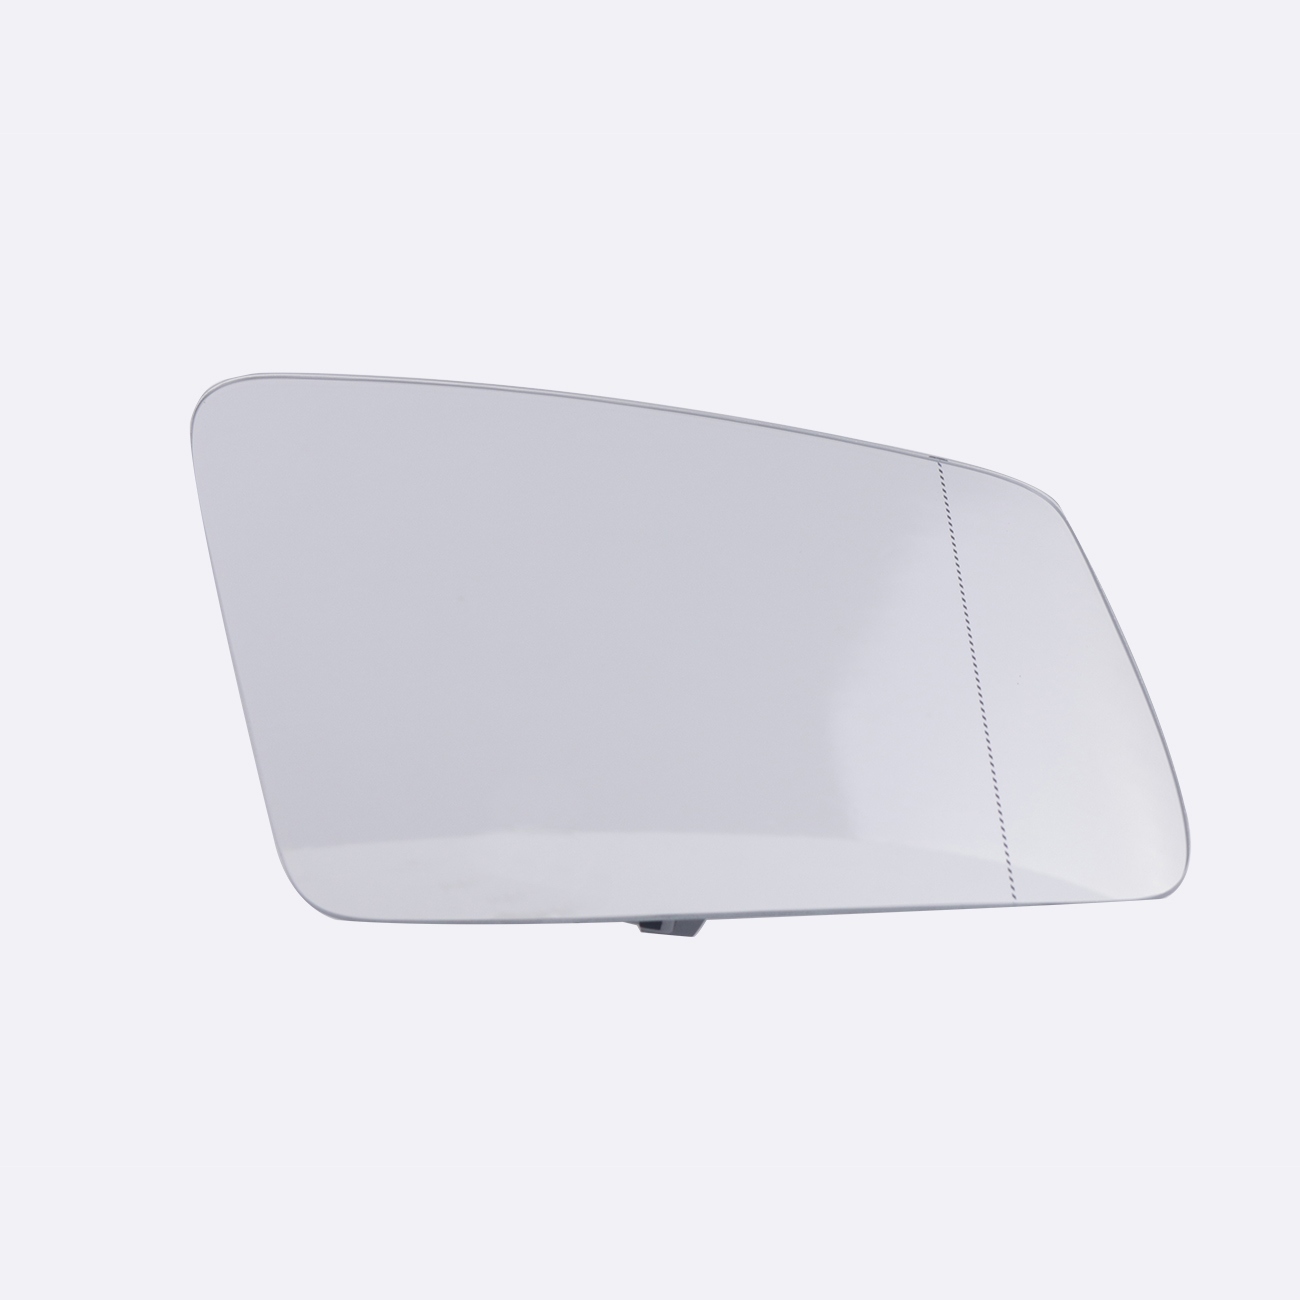 Right Side For Mercedes Benz Blind Line Heated Door Mirror Glass S class C class E Class W212 W204 X204 W221 C180 C250 C300 C //